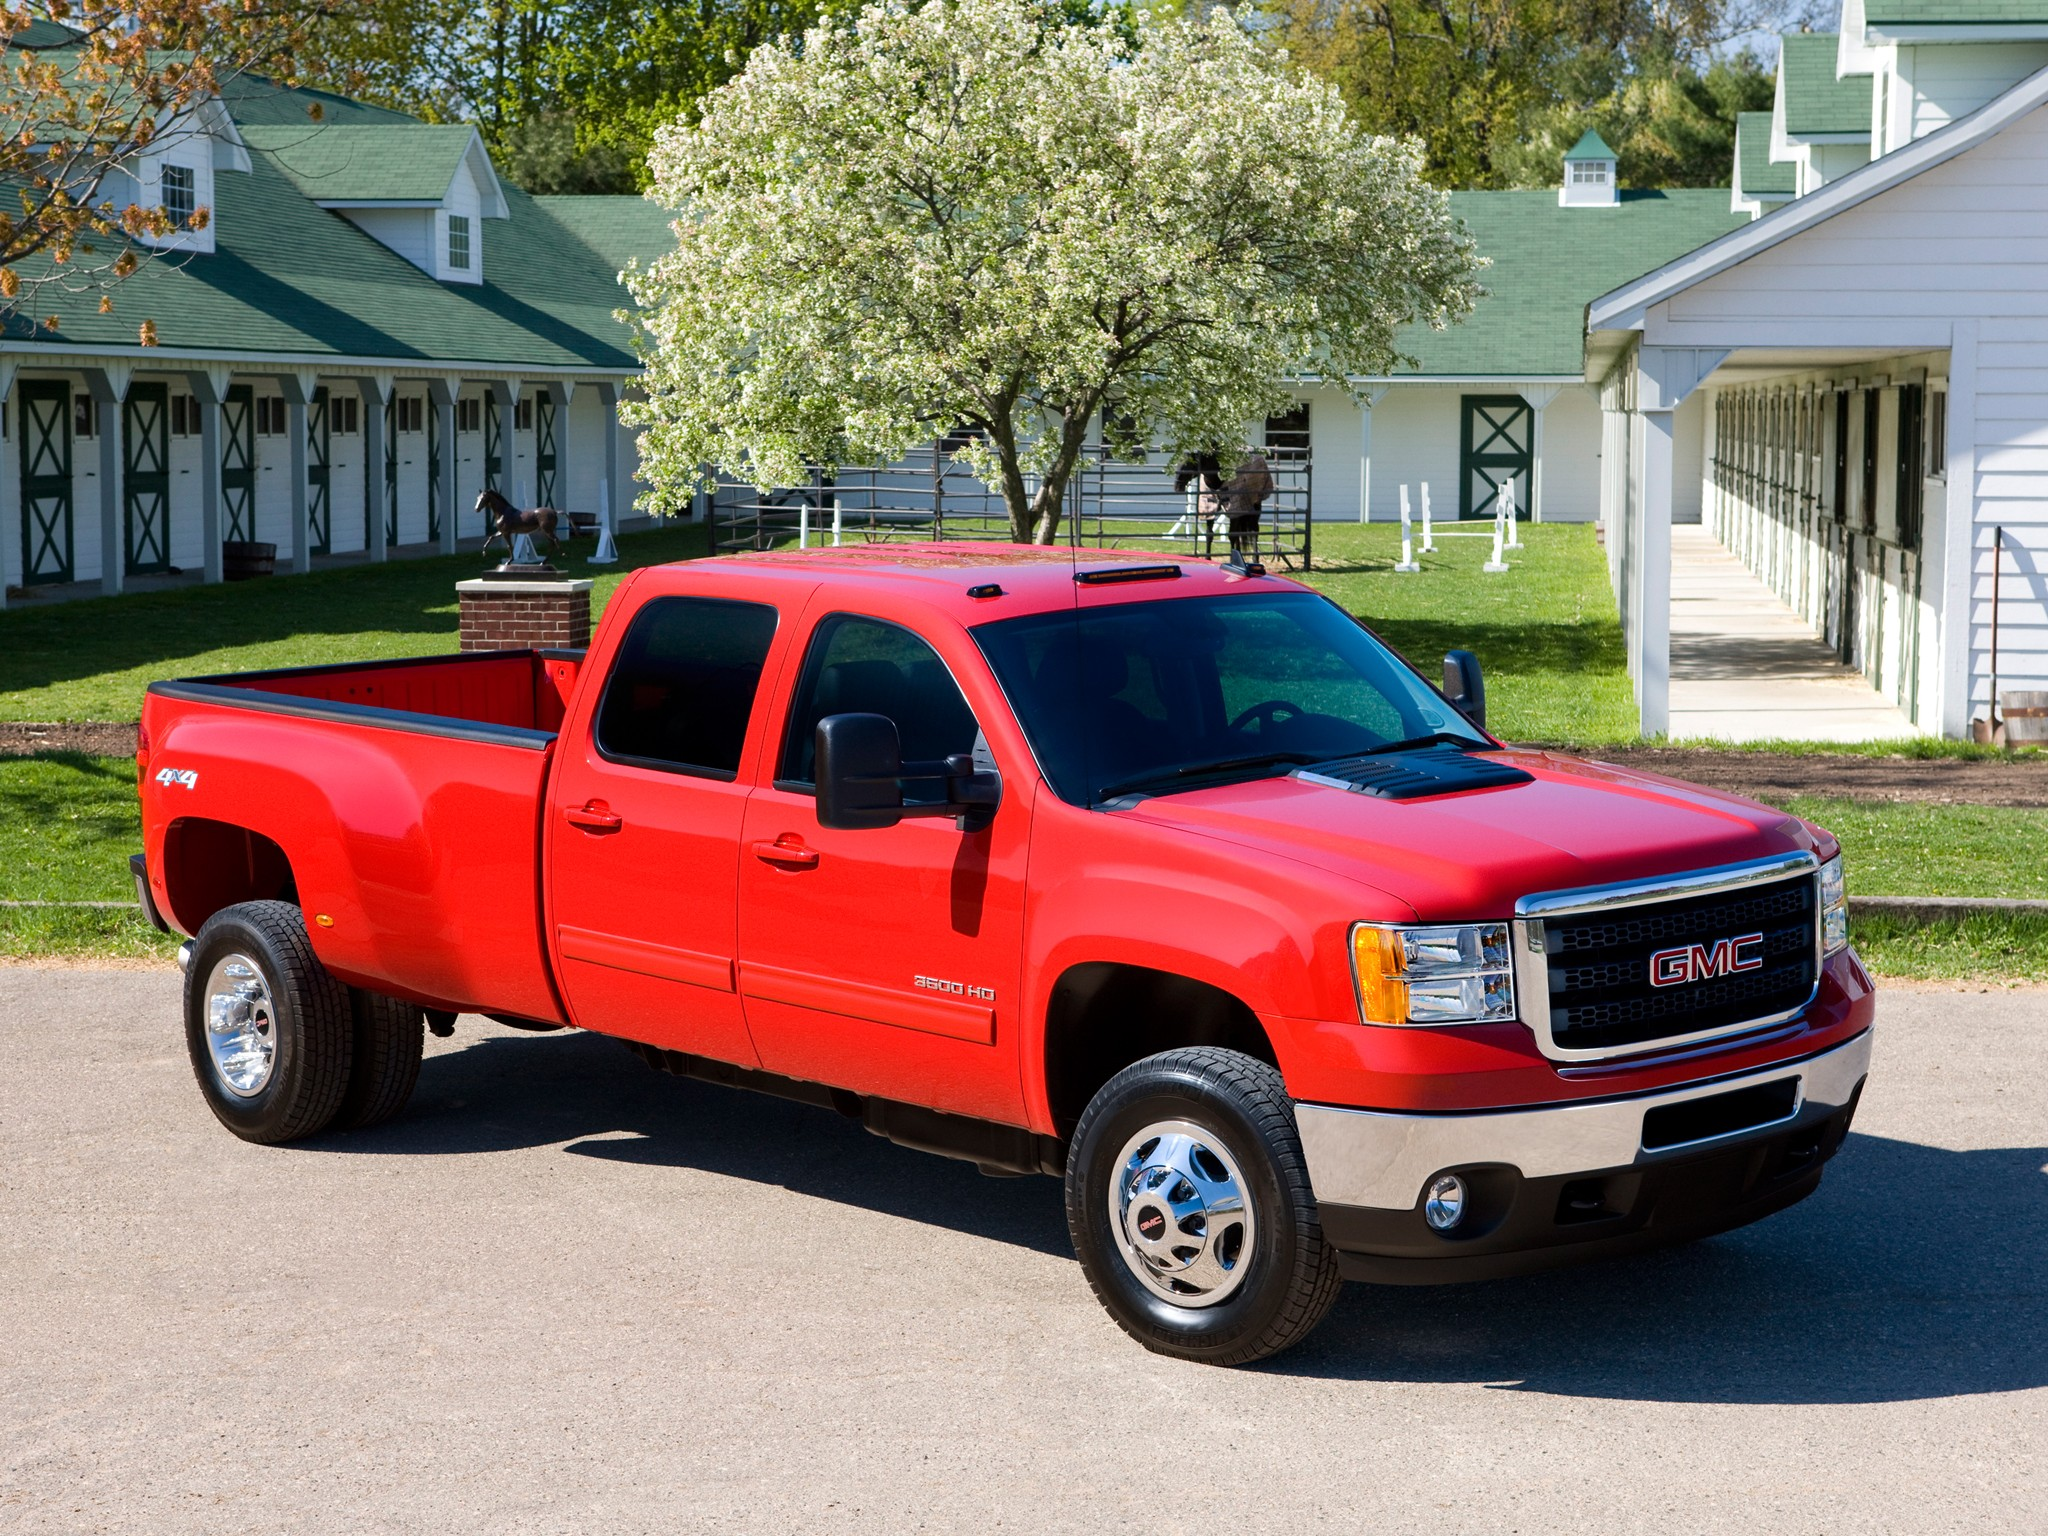 drive review duramax motion news three and denali sierra sep hd front gmc more first show in quarter